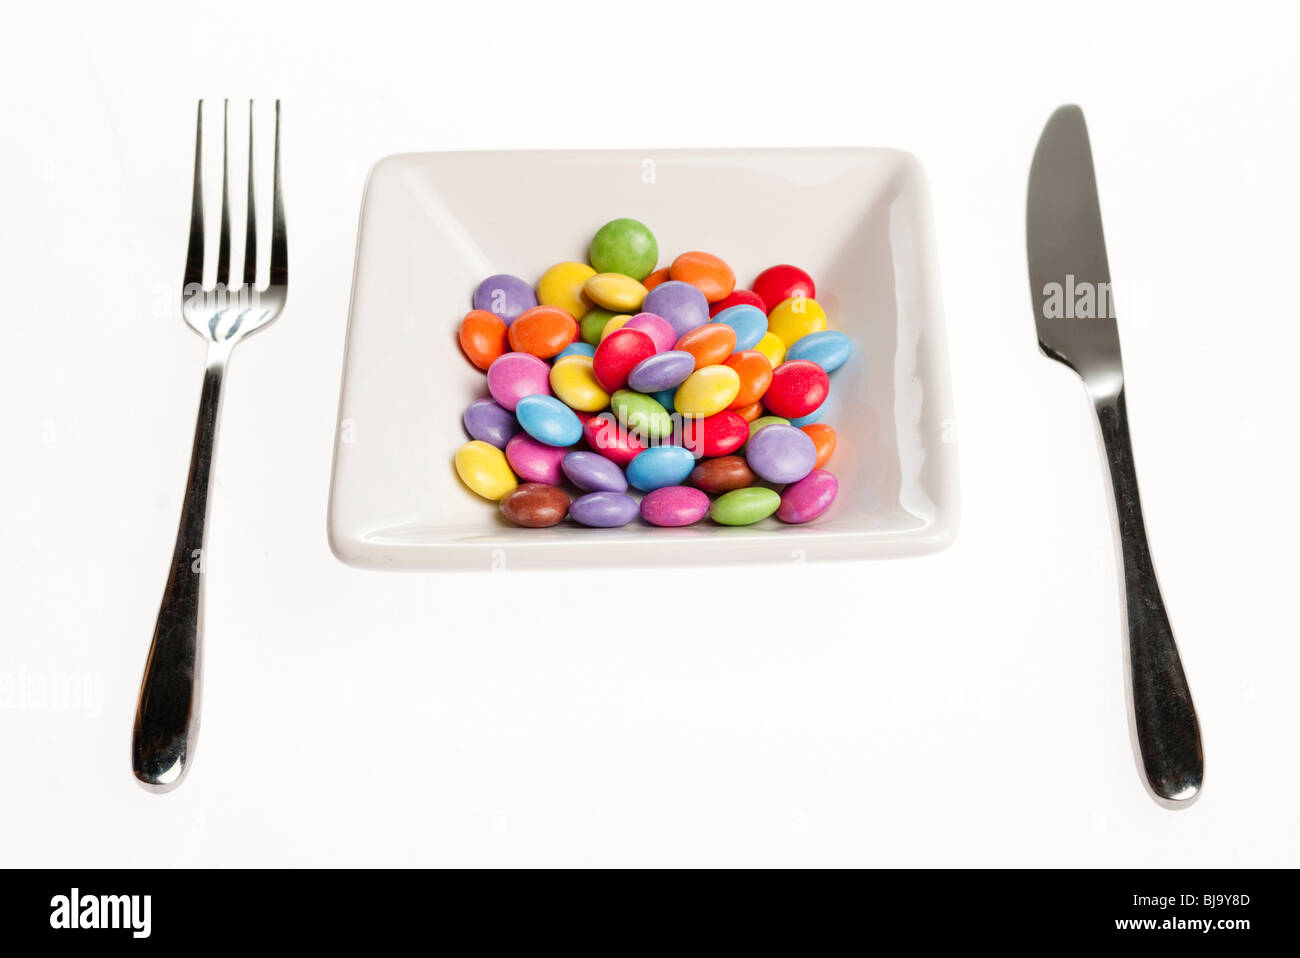 bowl of pills sweets - Stock Image